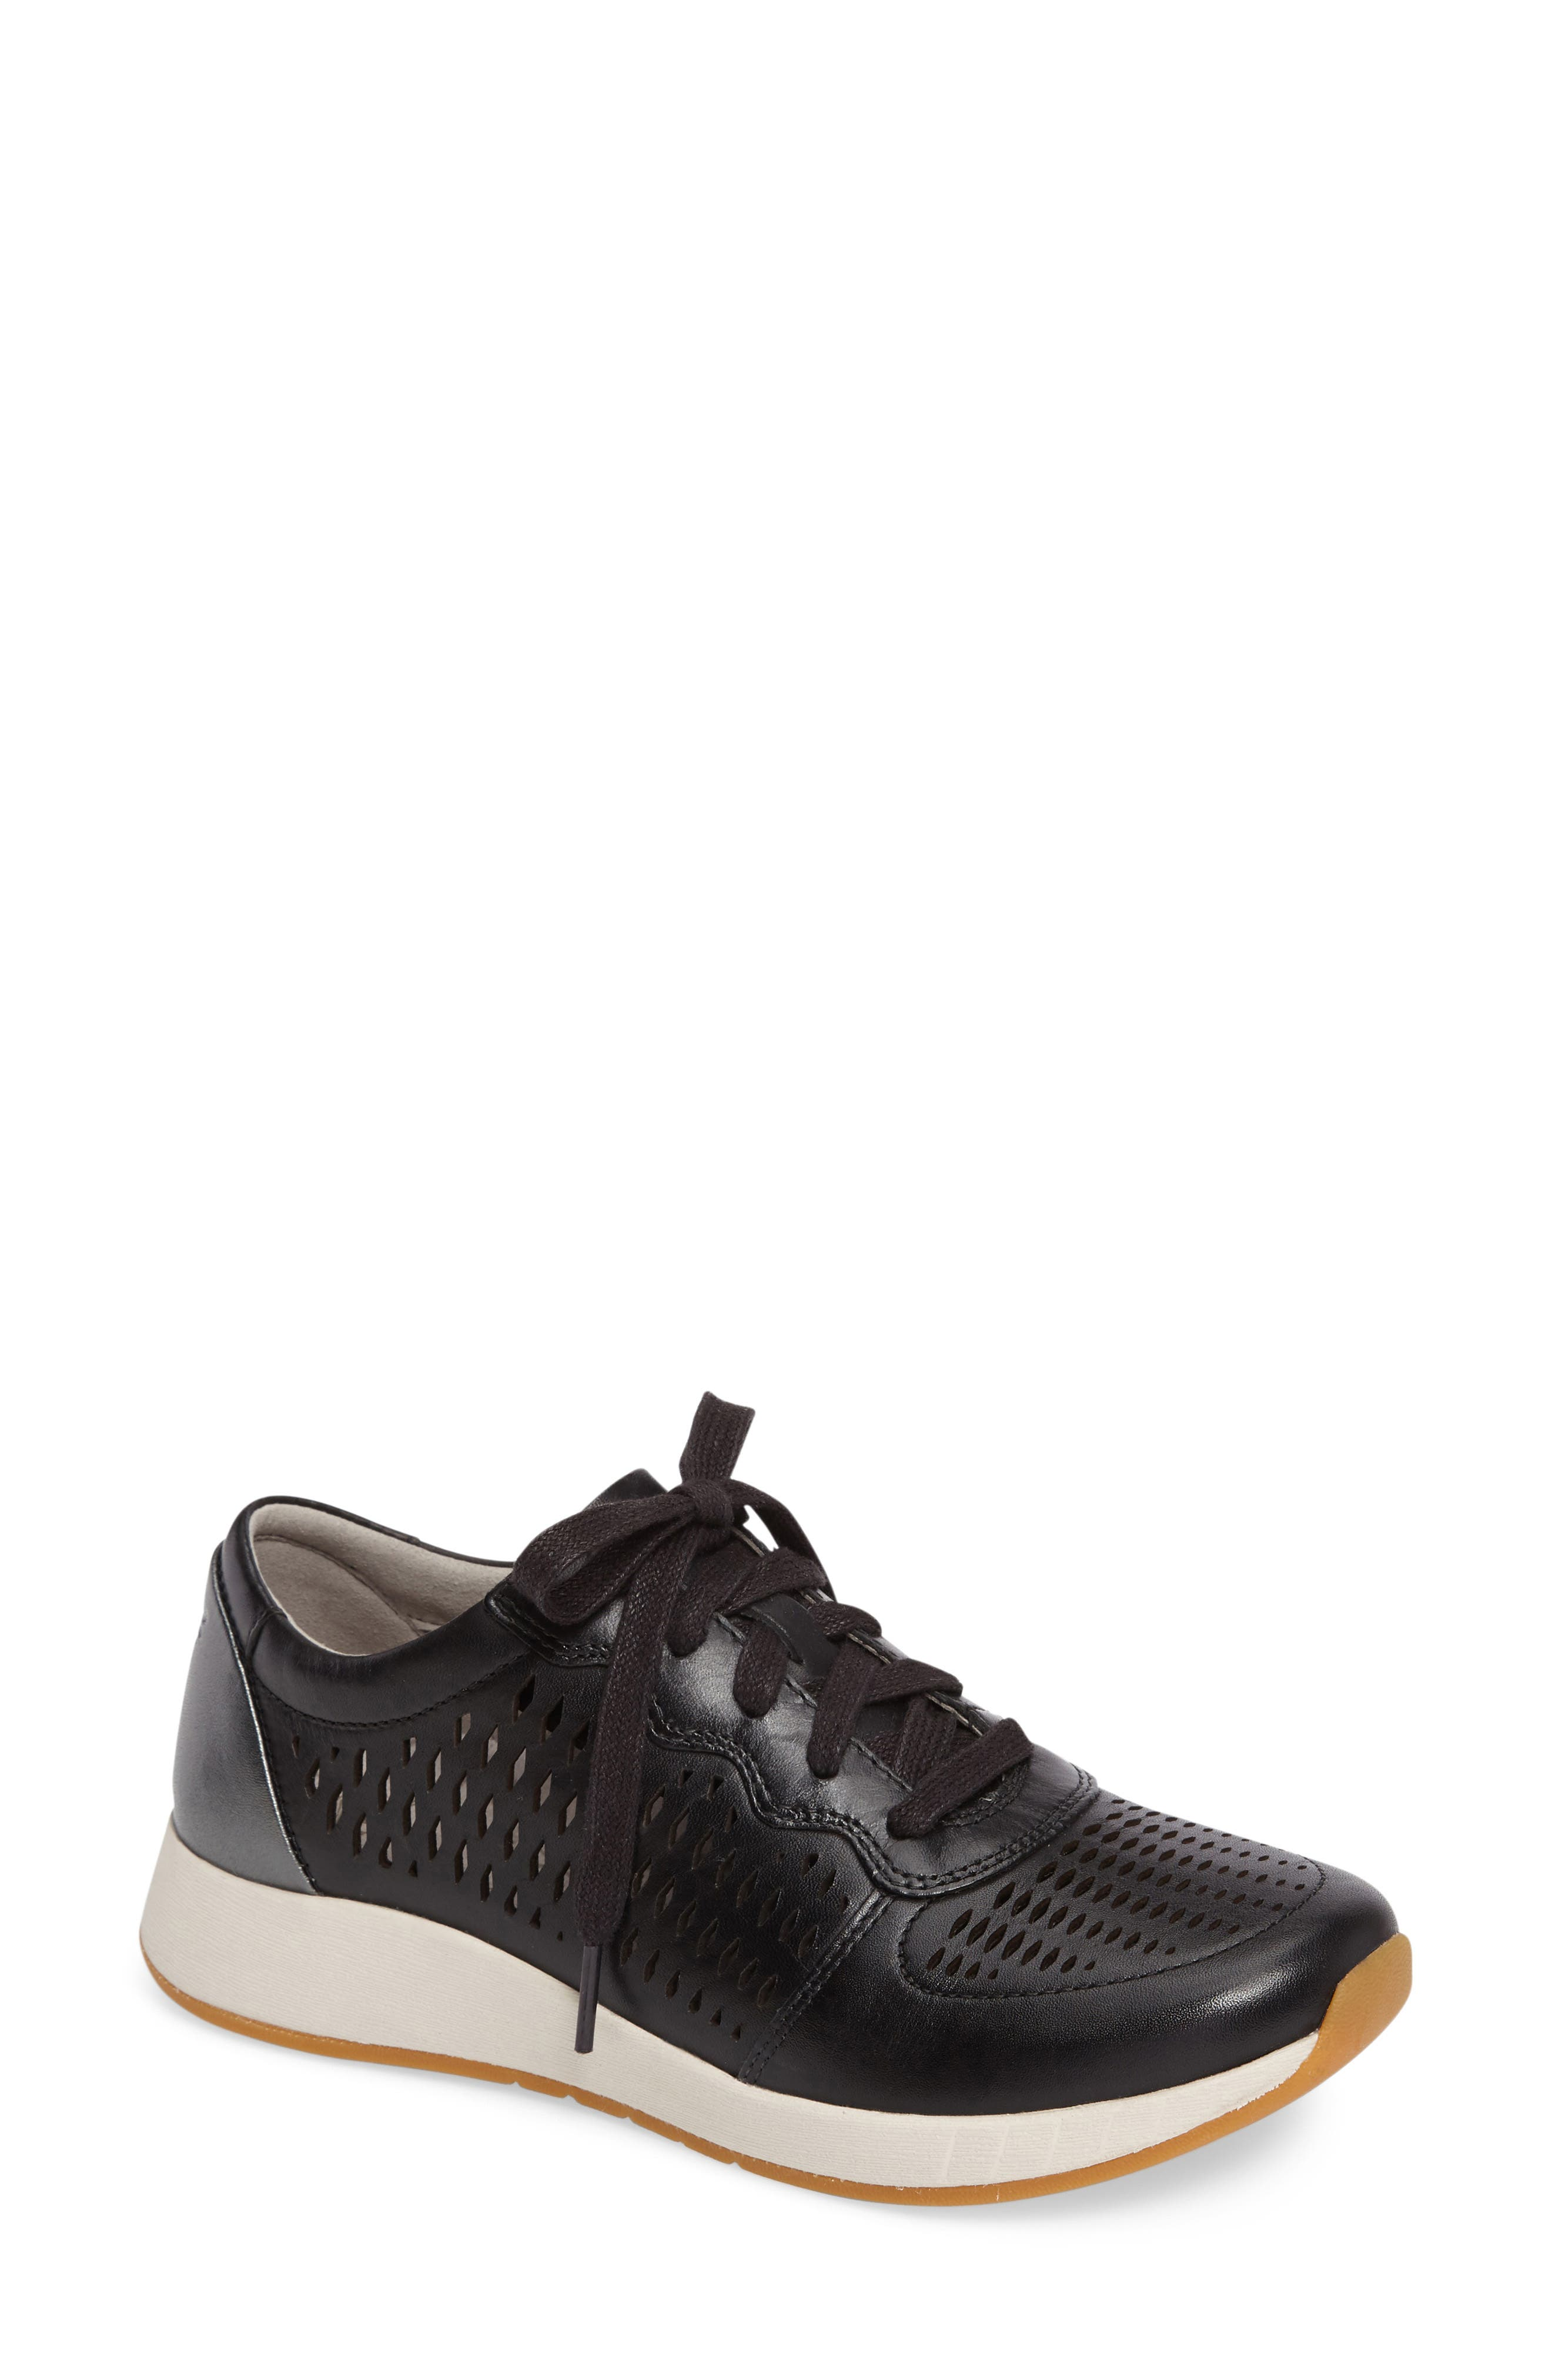 Charlie Perforated Sneaker,                             Main thumbnail 1, color,                             Black Leather